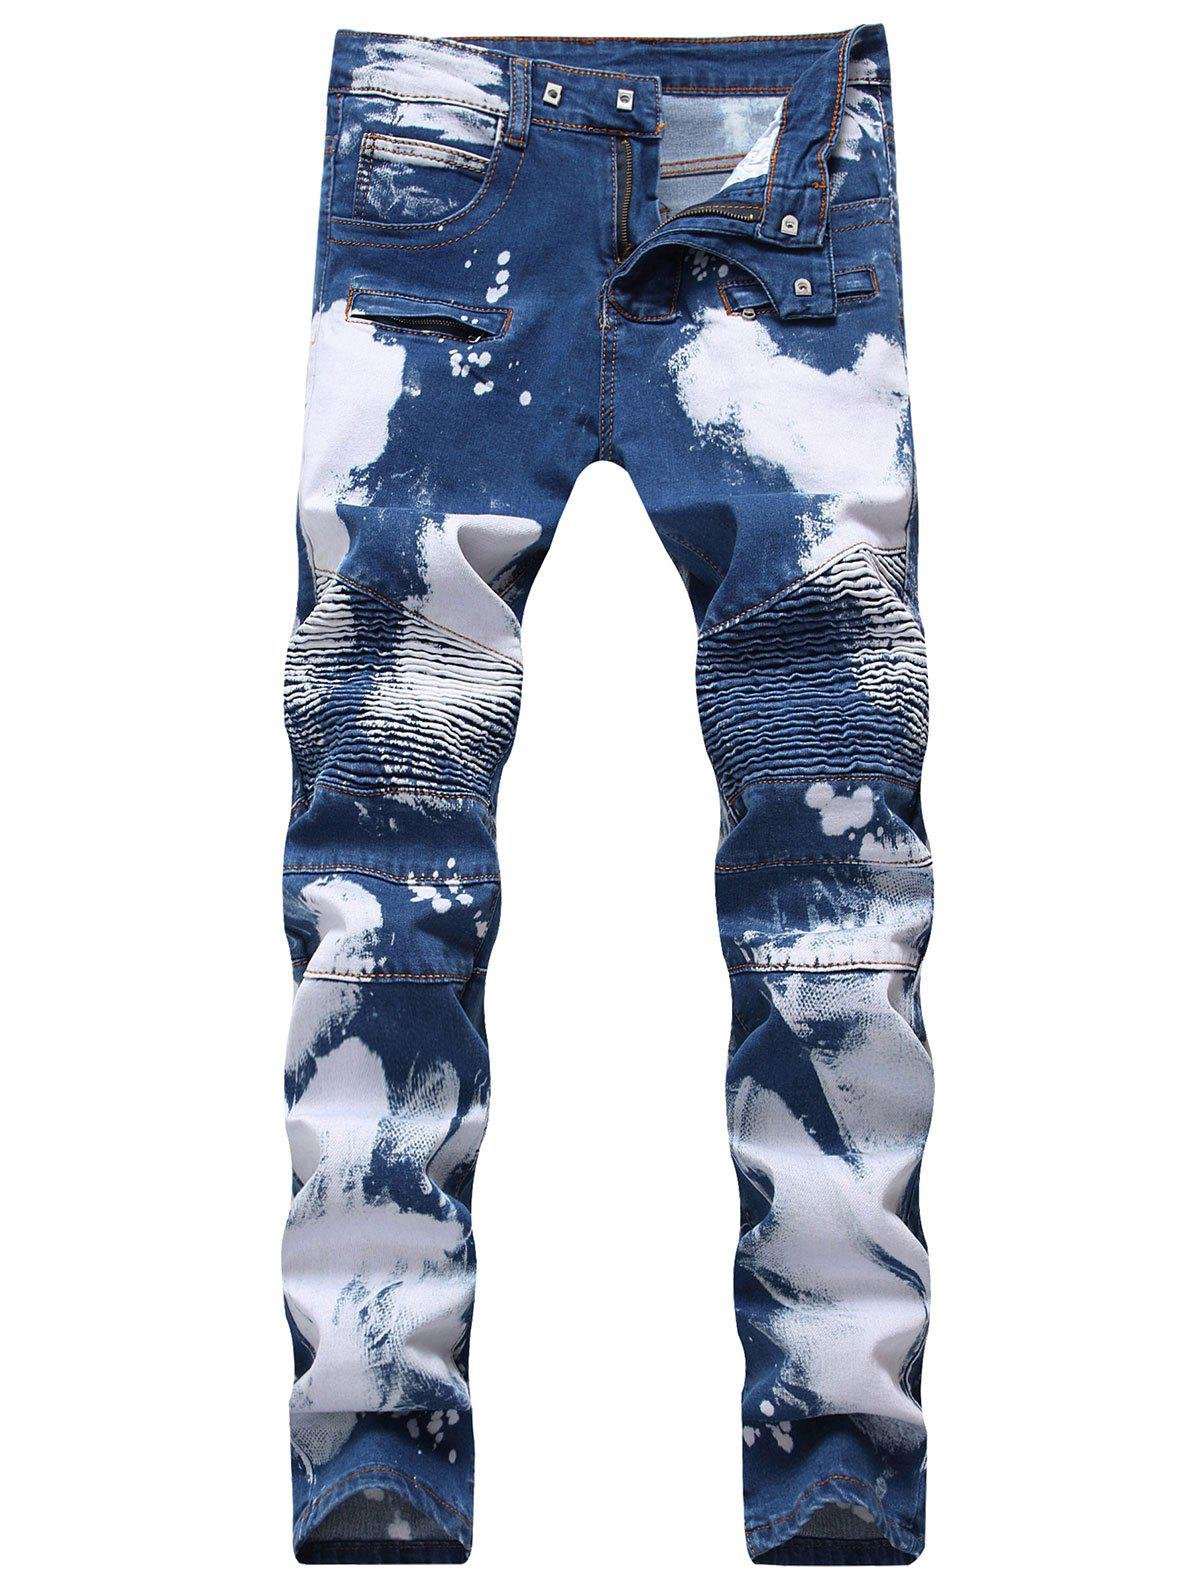 Hook Button Paint Splatter Print Straight Leg Jeans - DEEP BLUE 36